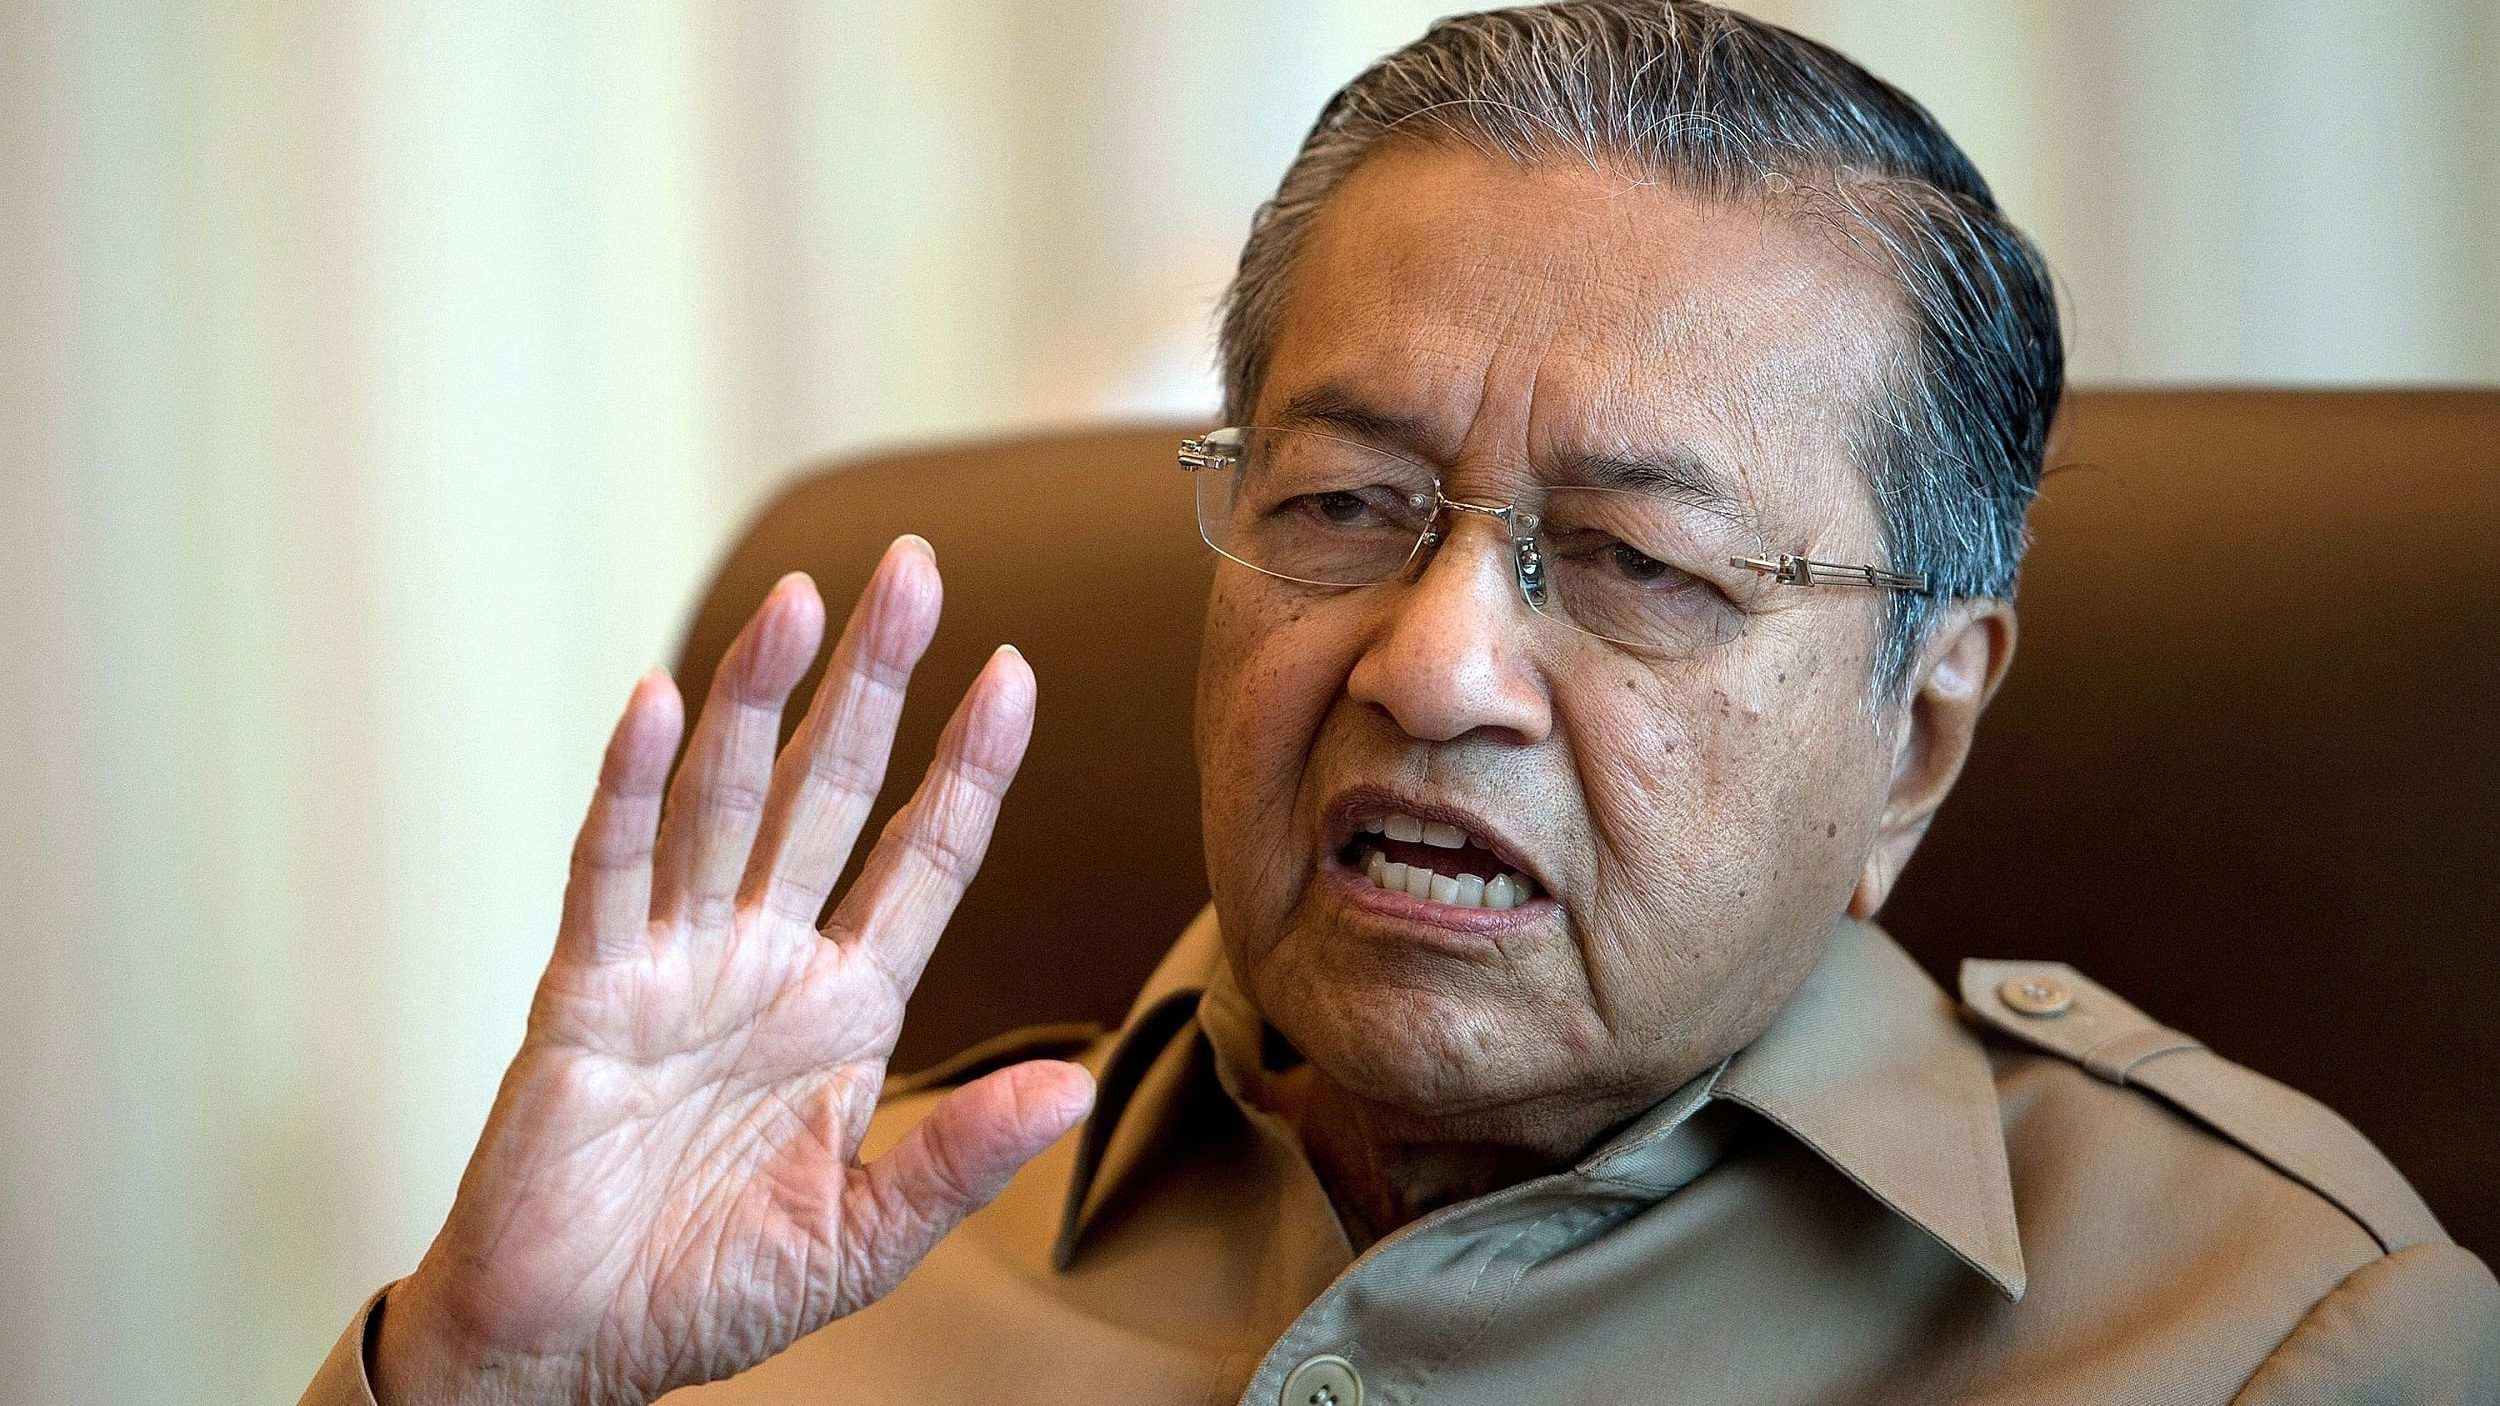 Mahathir reemerged as candidate as Malaysia's new prime minister